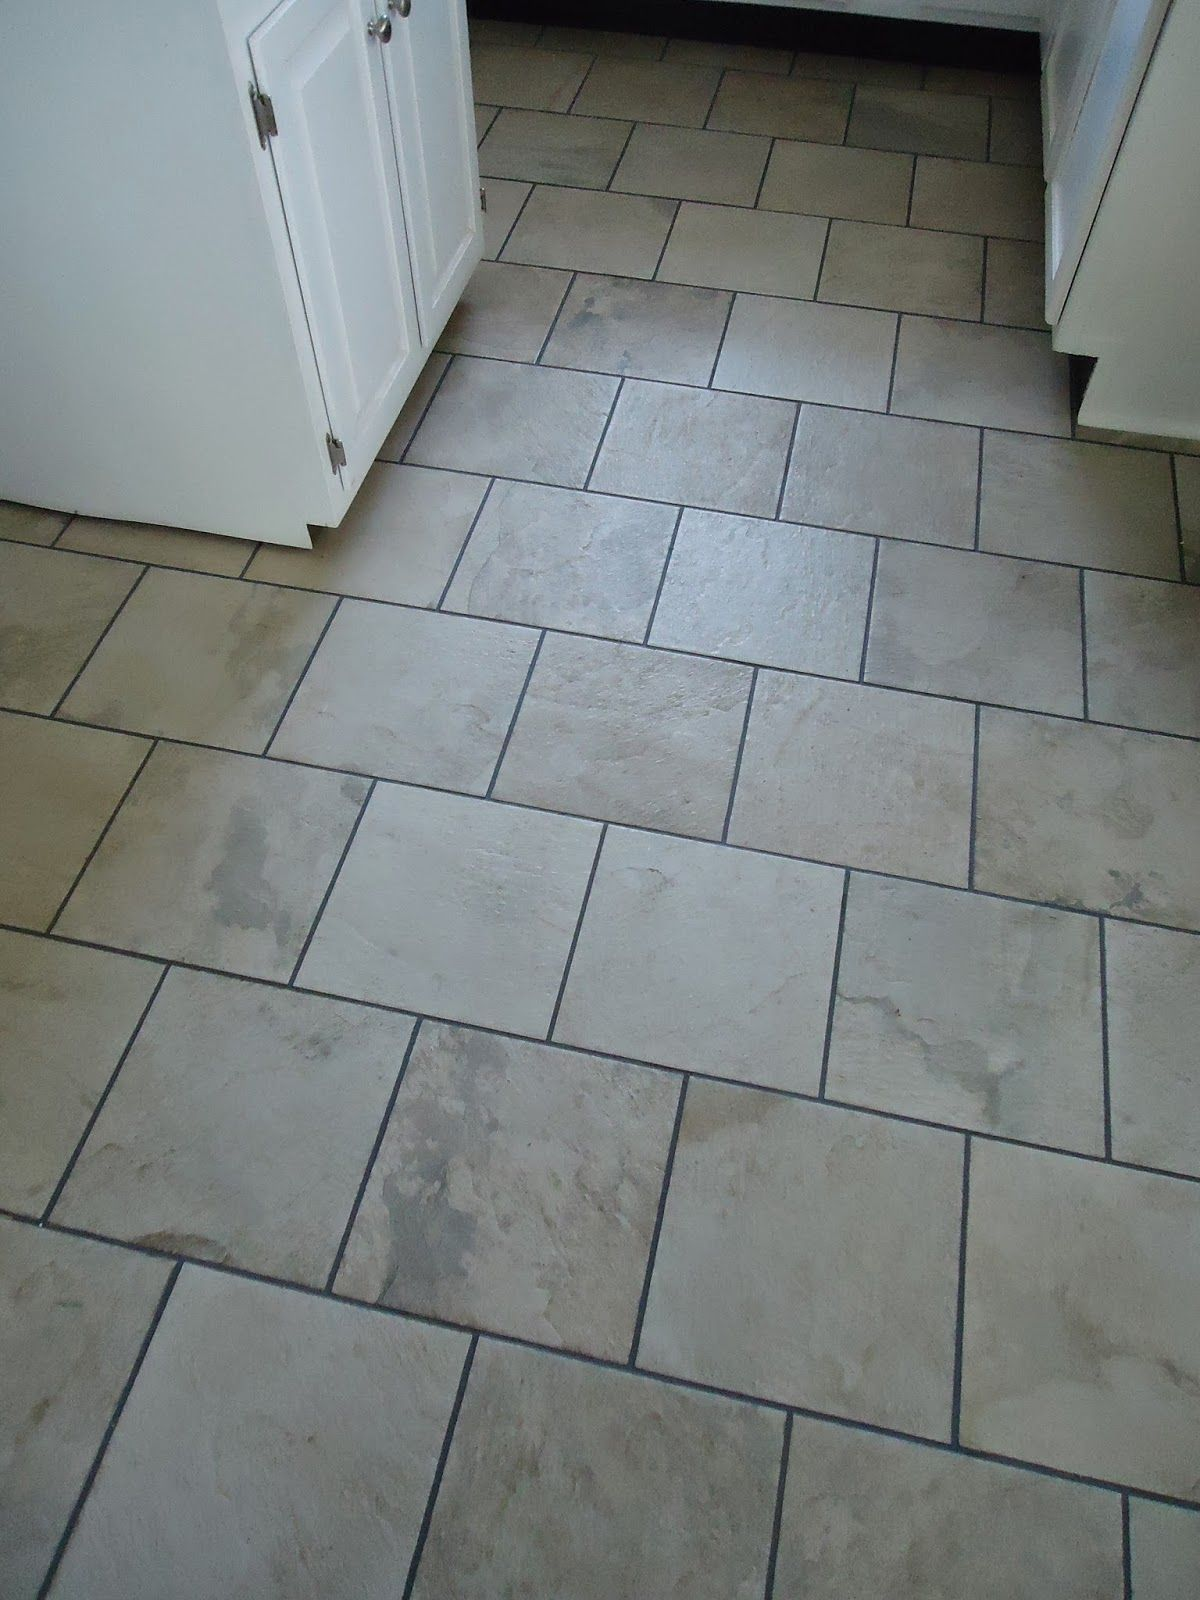 How to change the color of your tile grout without removing the how to change the color of your tile grout without removing the grout quick dailygadgetfo Images